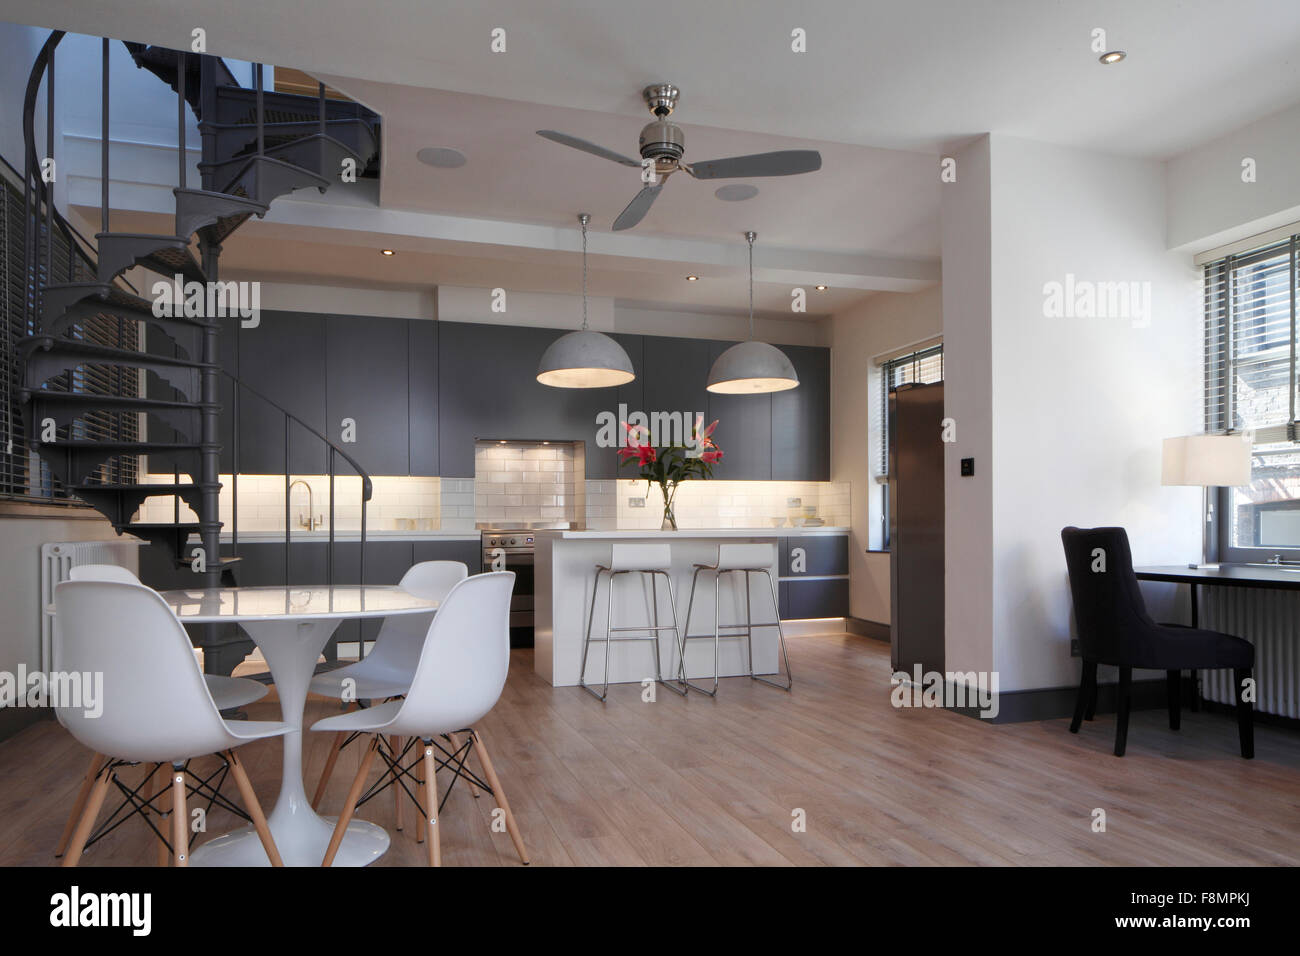 Wide Angle Of Living Space And Kitchen With Spiral Staircase. Lights On